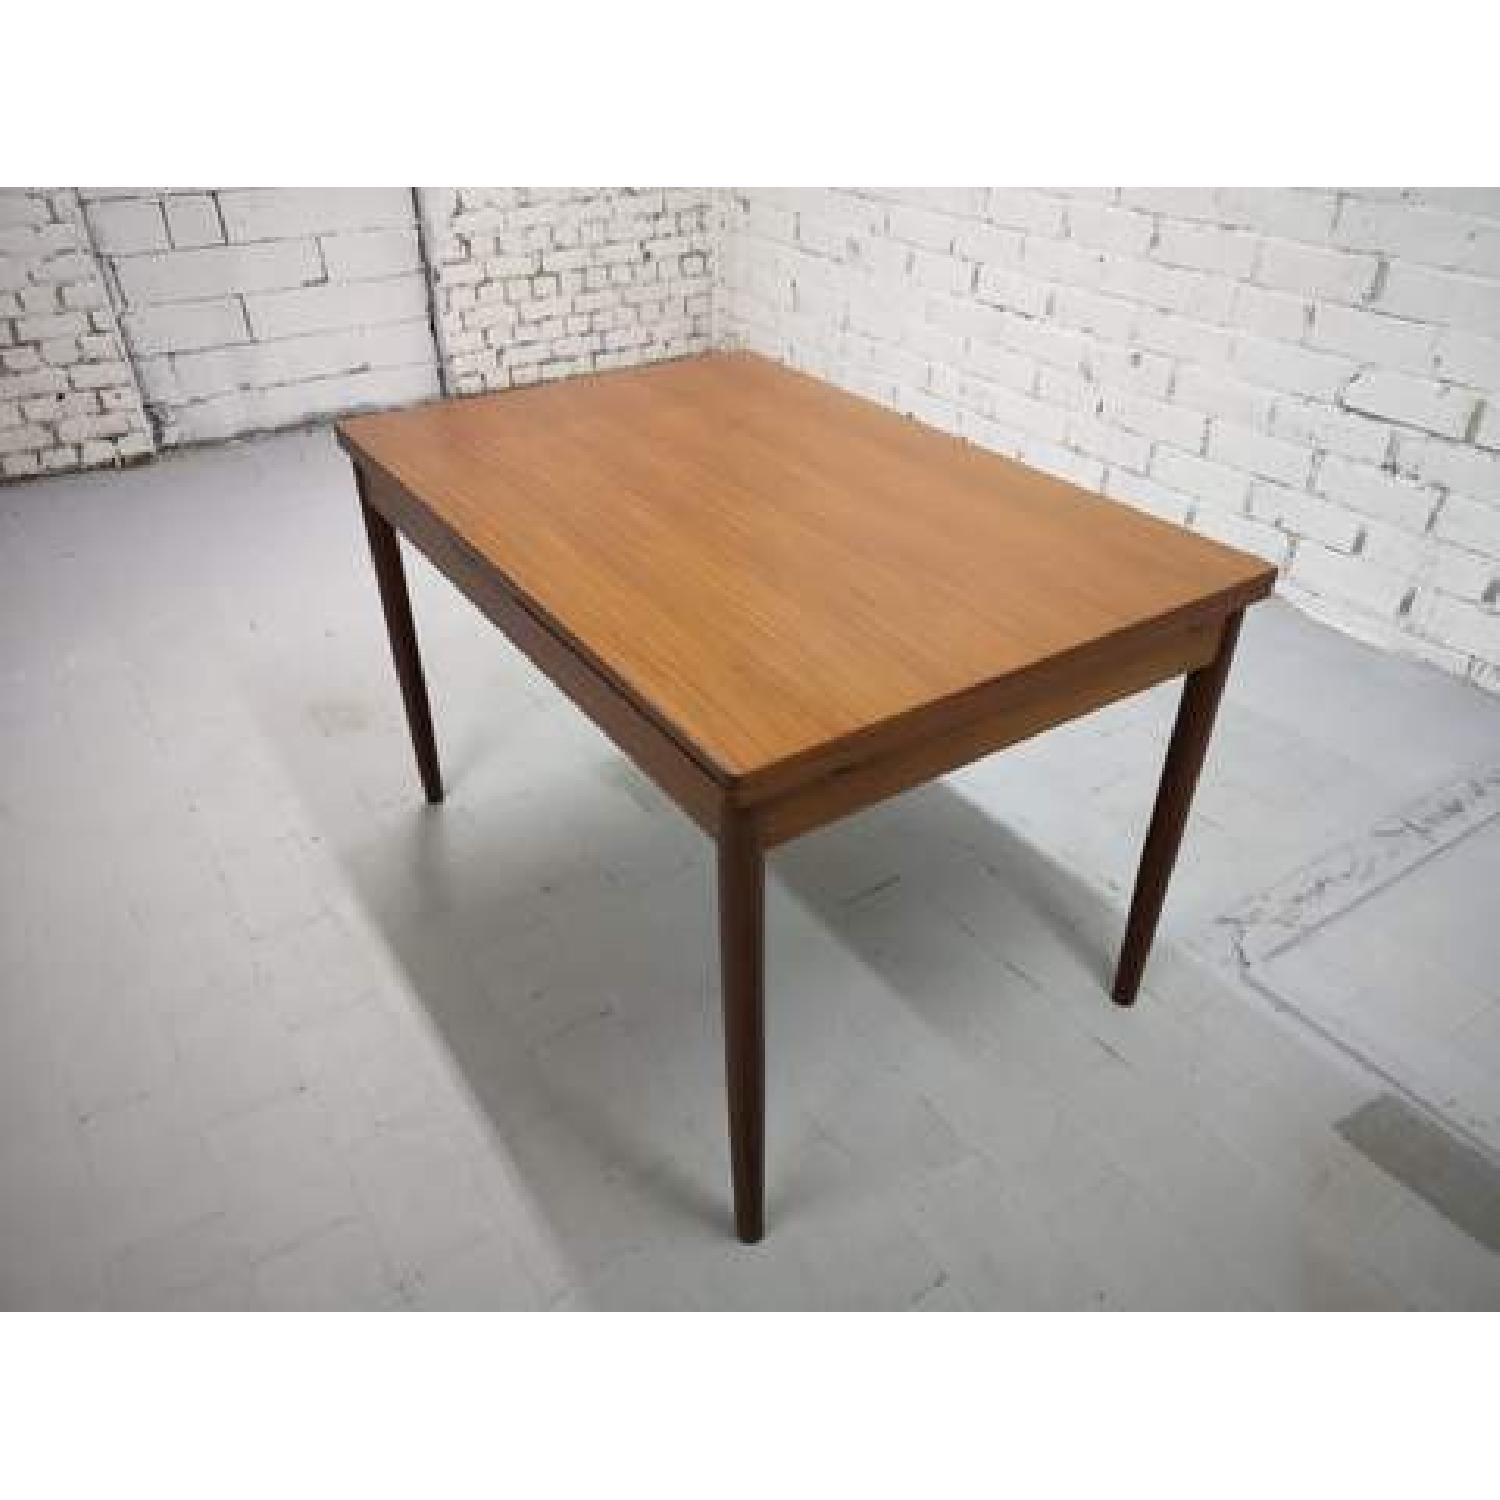 Mid-Century Modern Danish Extendable Draw Leaf Dining Table-11